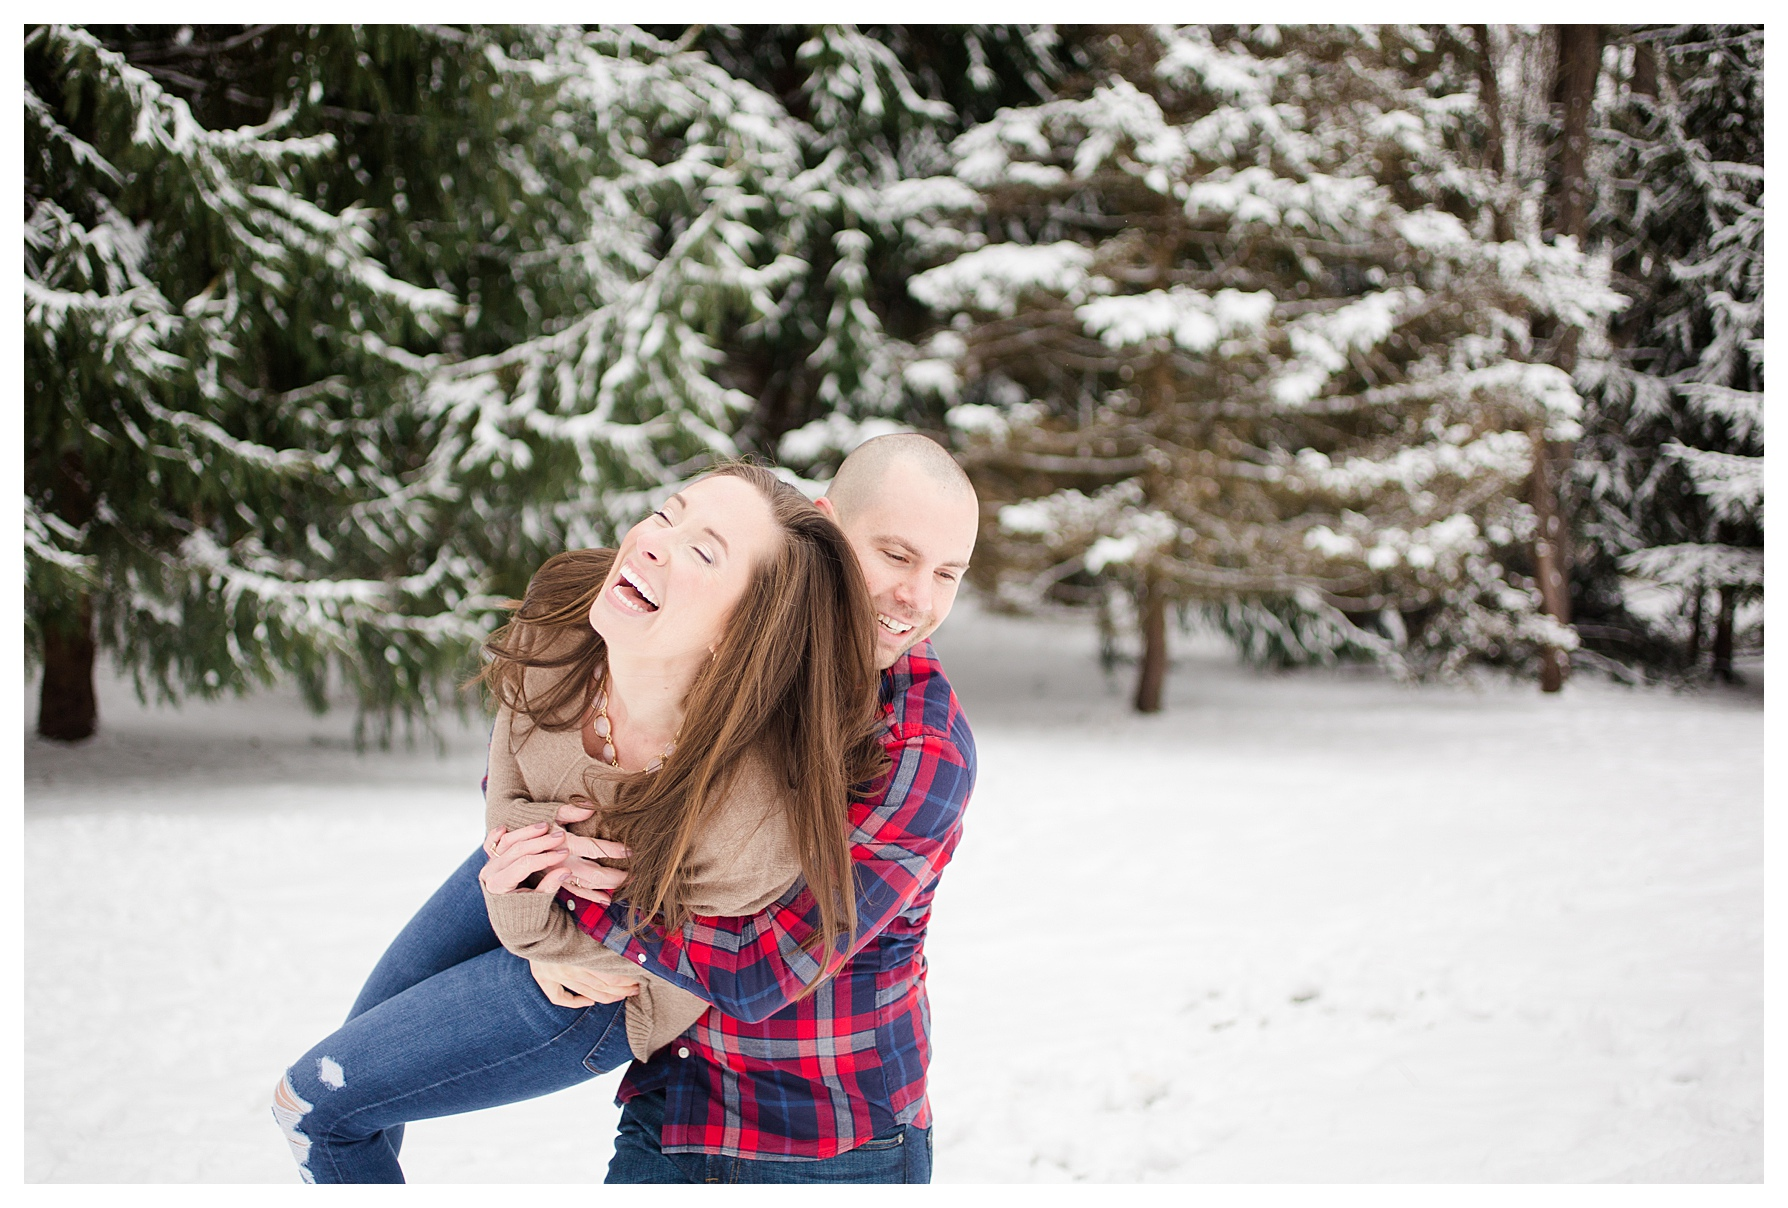 columbus-winter-engagement-photos_0036.jpg